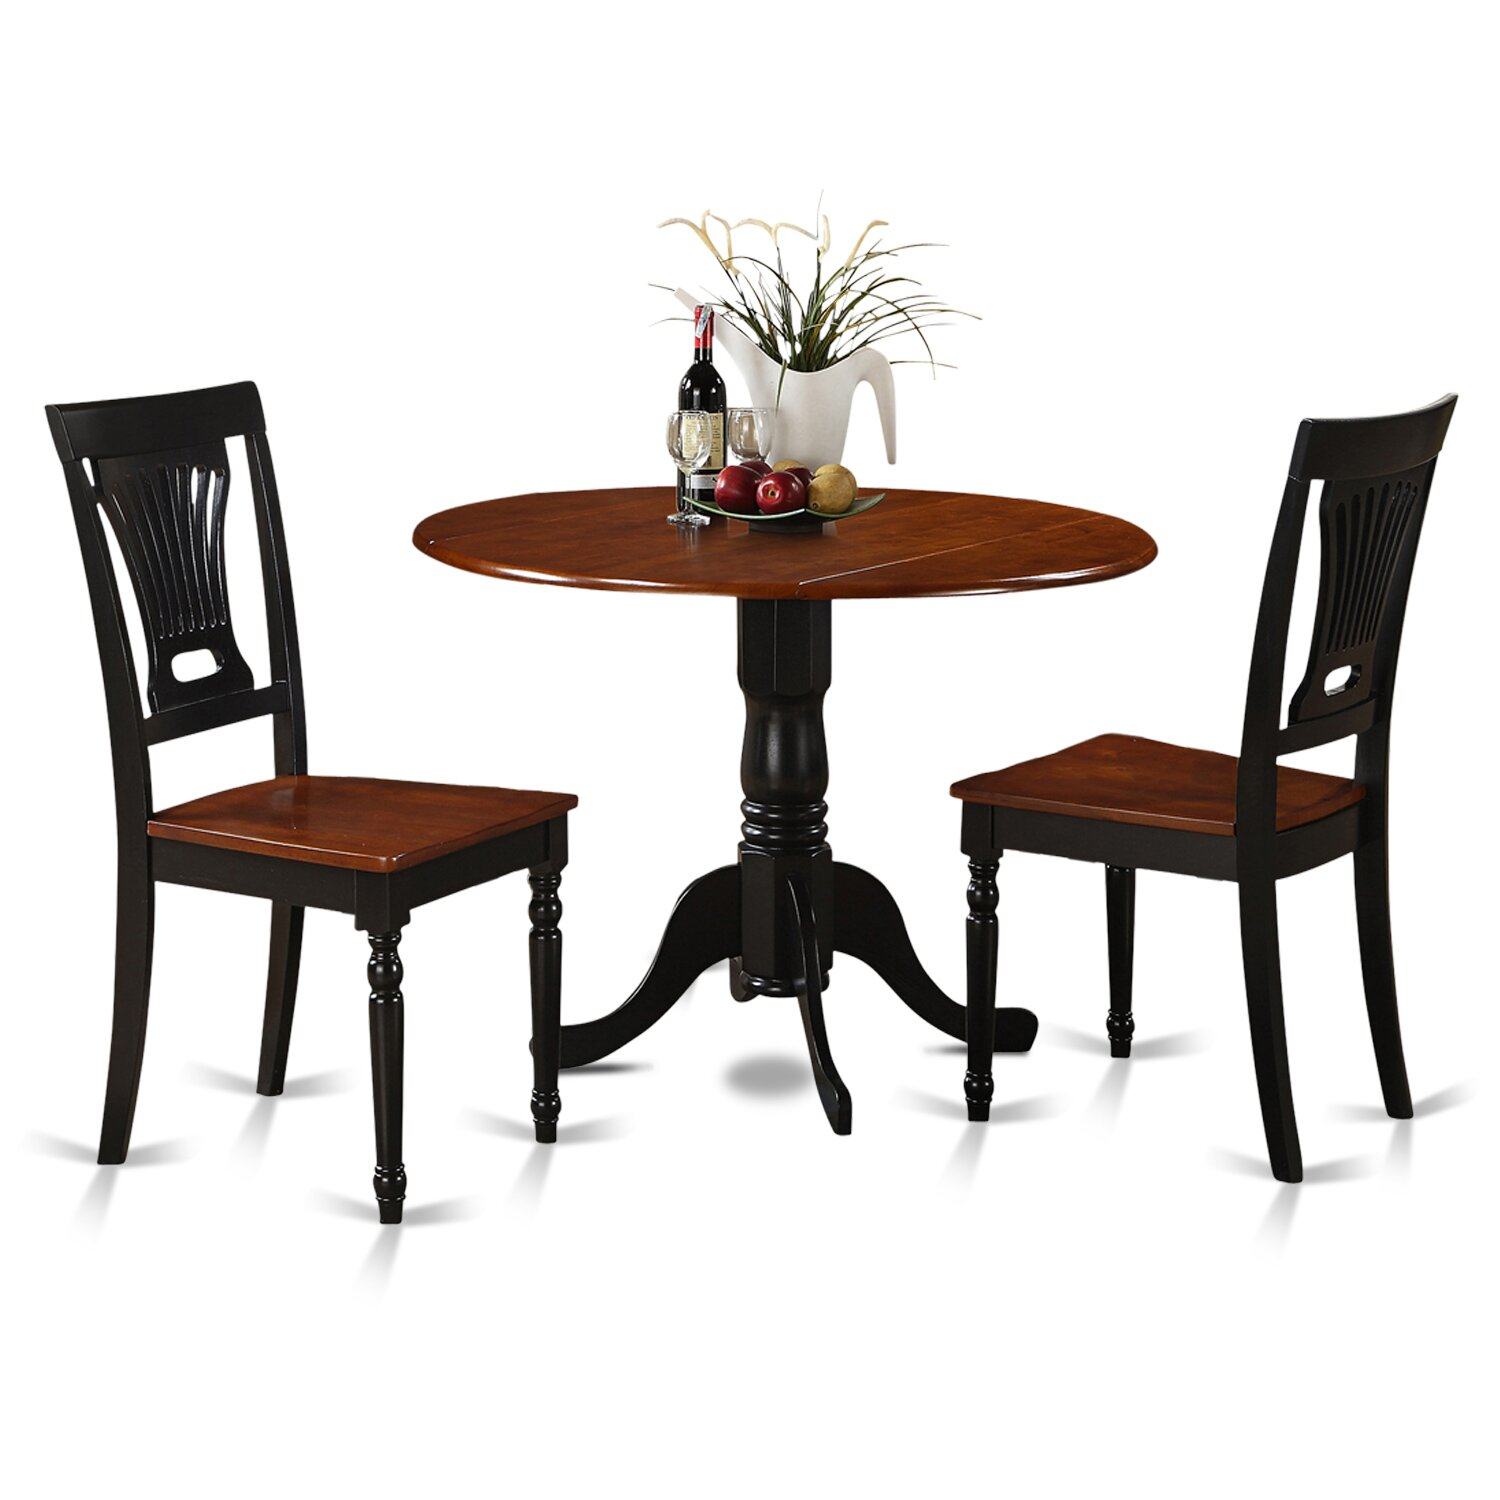 Wooden importers dublin 3 piece dining set reviews wayfair for Compact kitchen table set